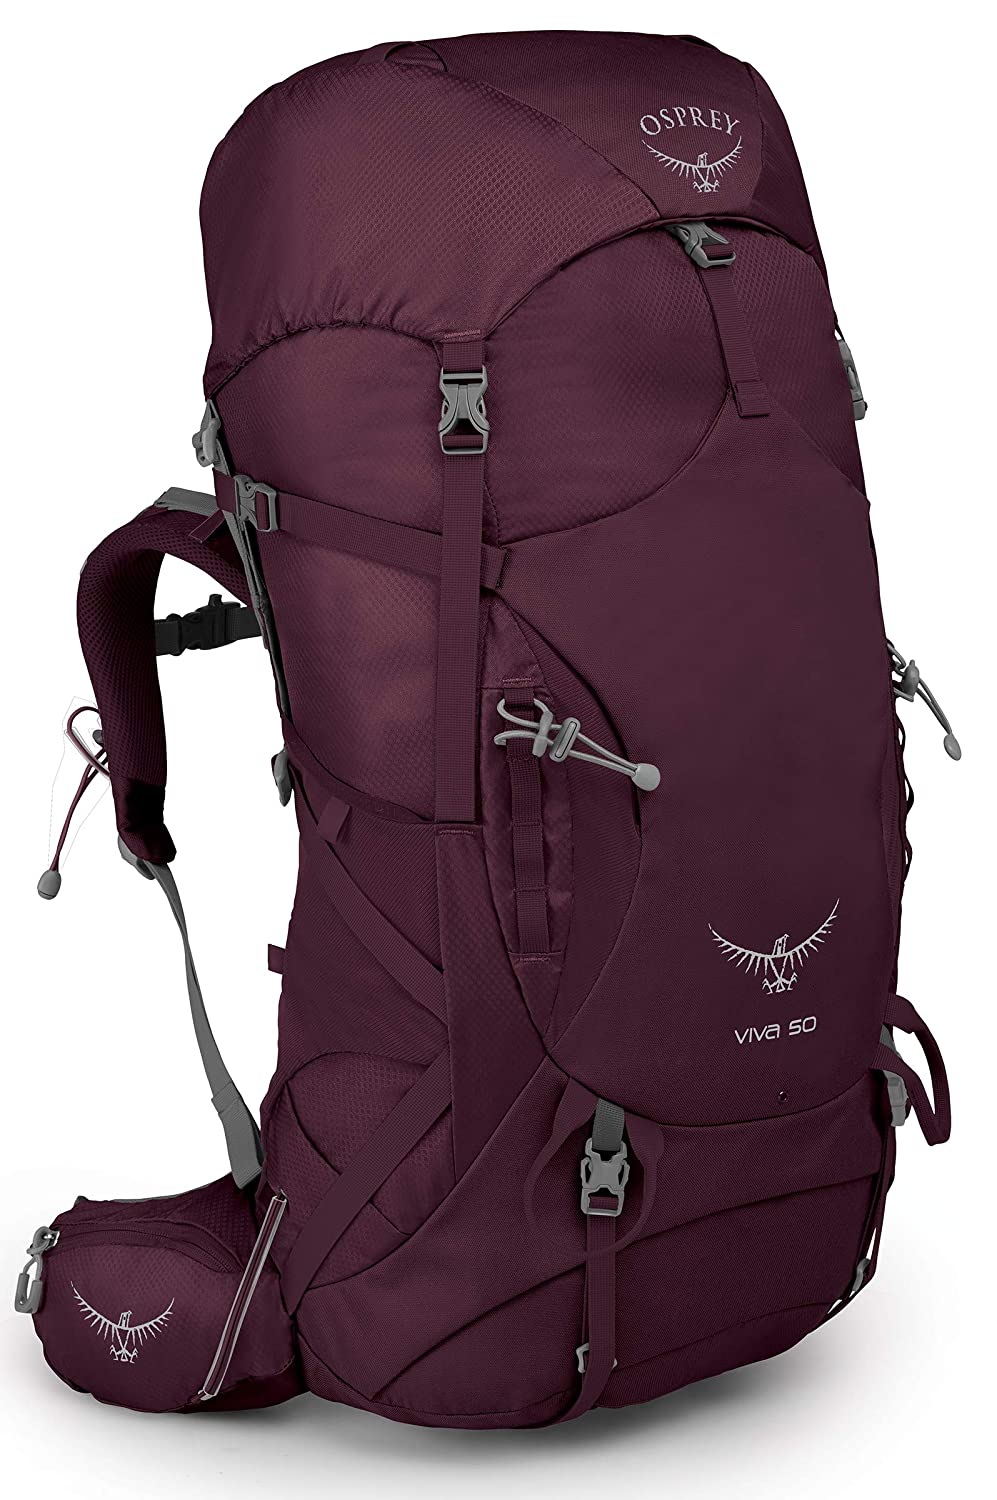 Osprey Packs Viva 50 Women s Backpacking Backpack